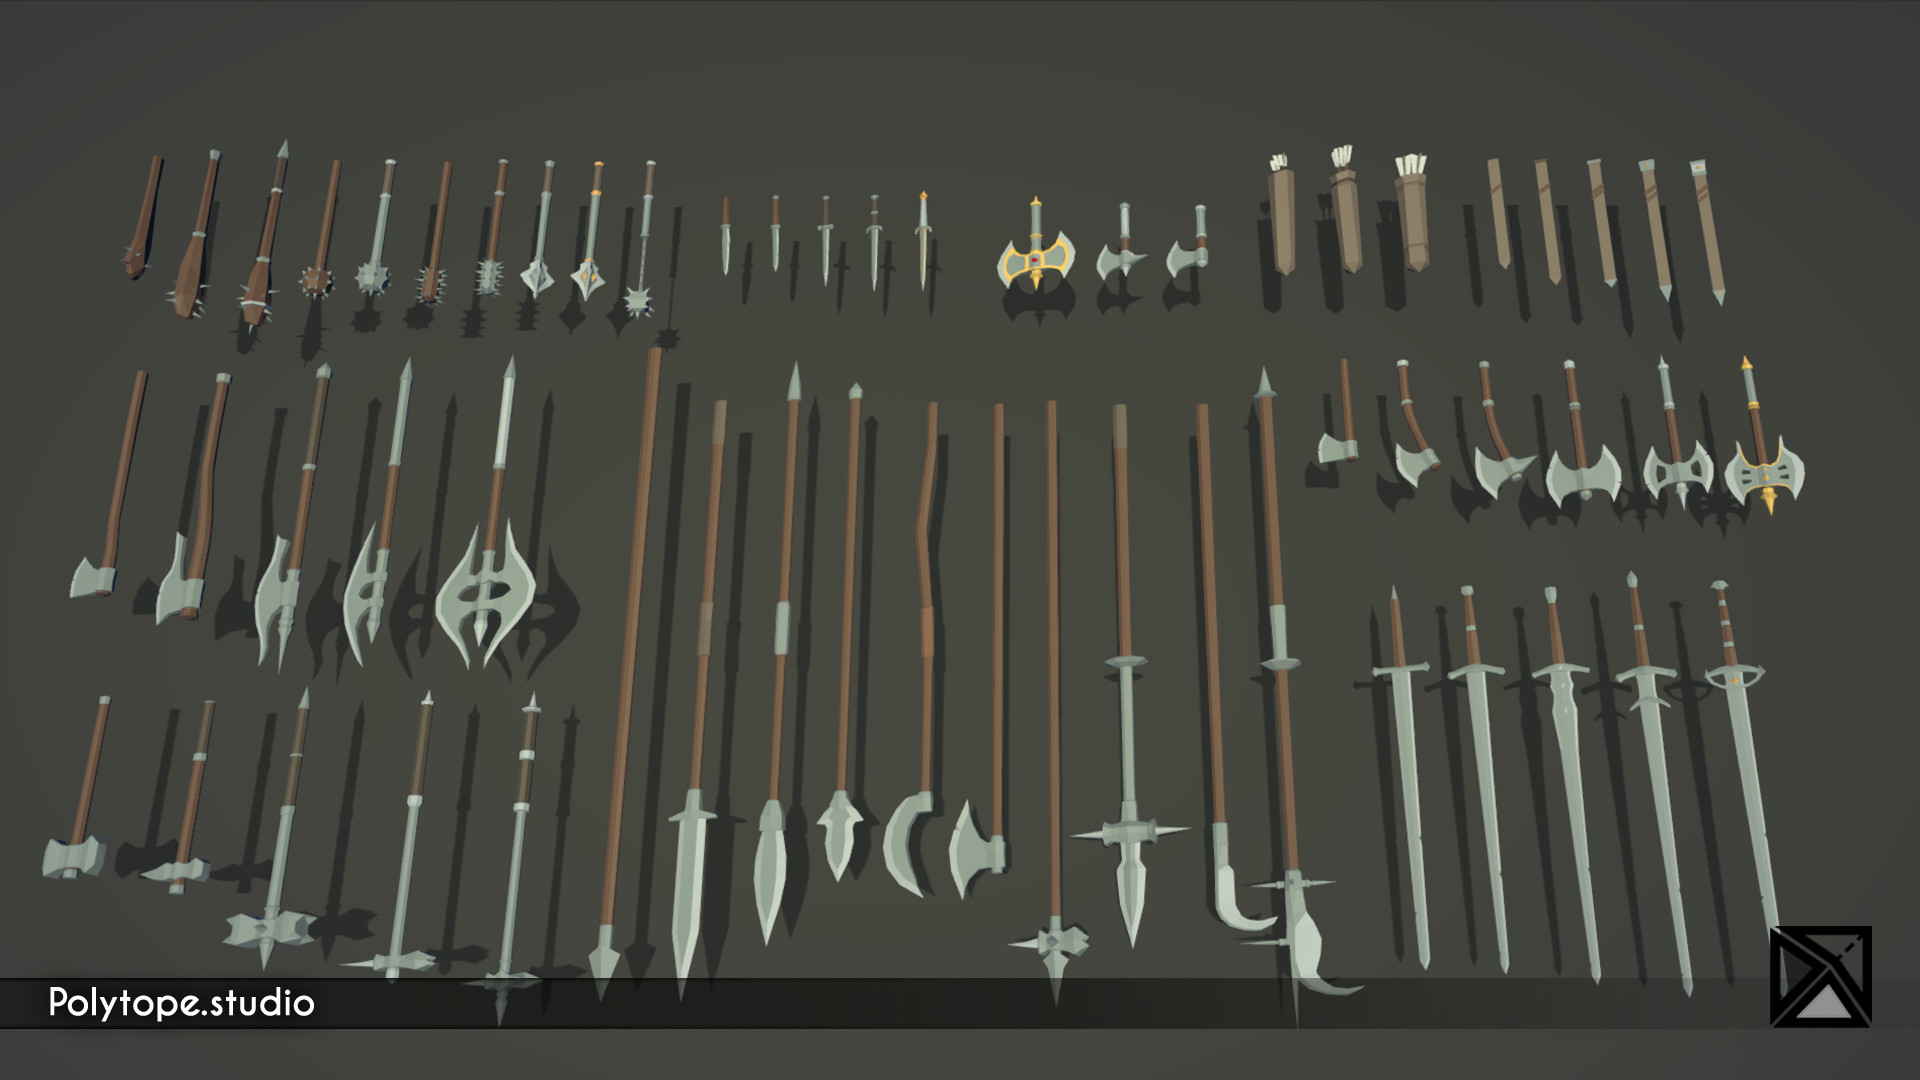 Polytope studio pt medieval lowpoly weapons sword axe halberd mace dagger warhammer quiver pike sheat